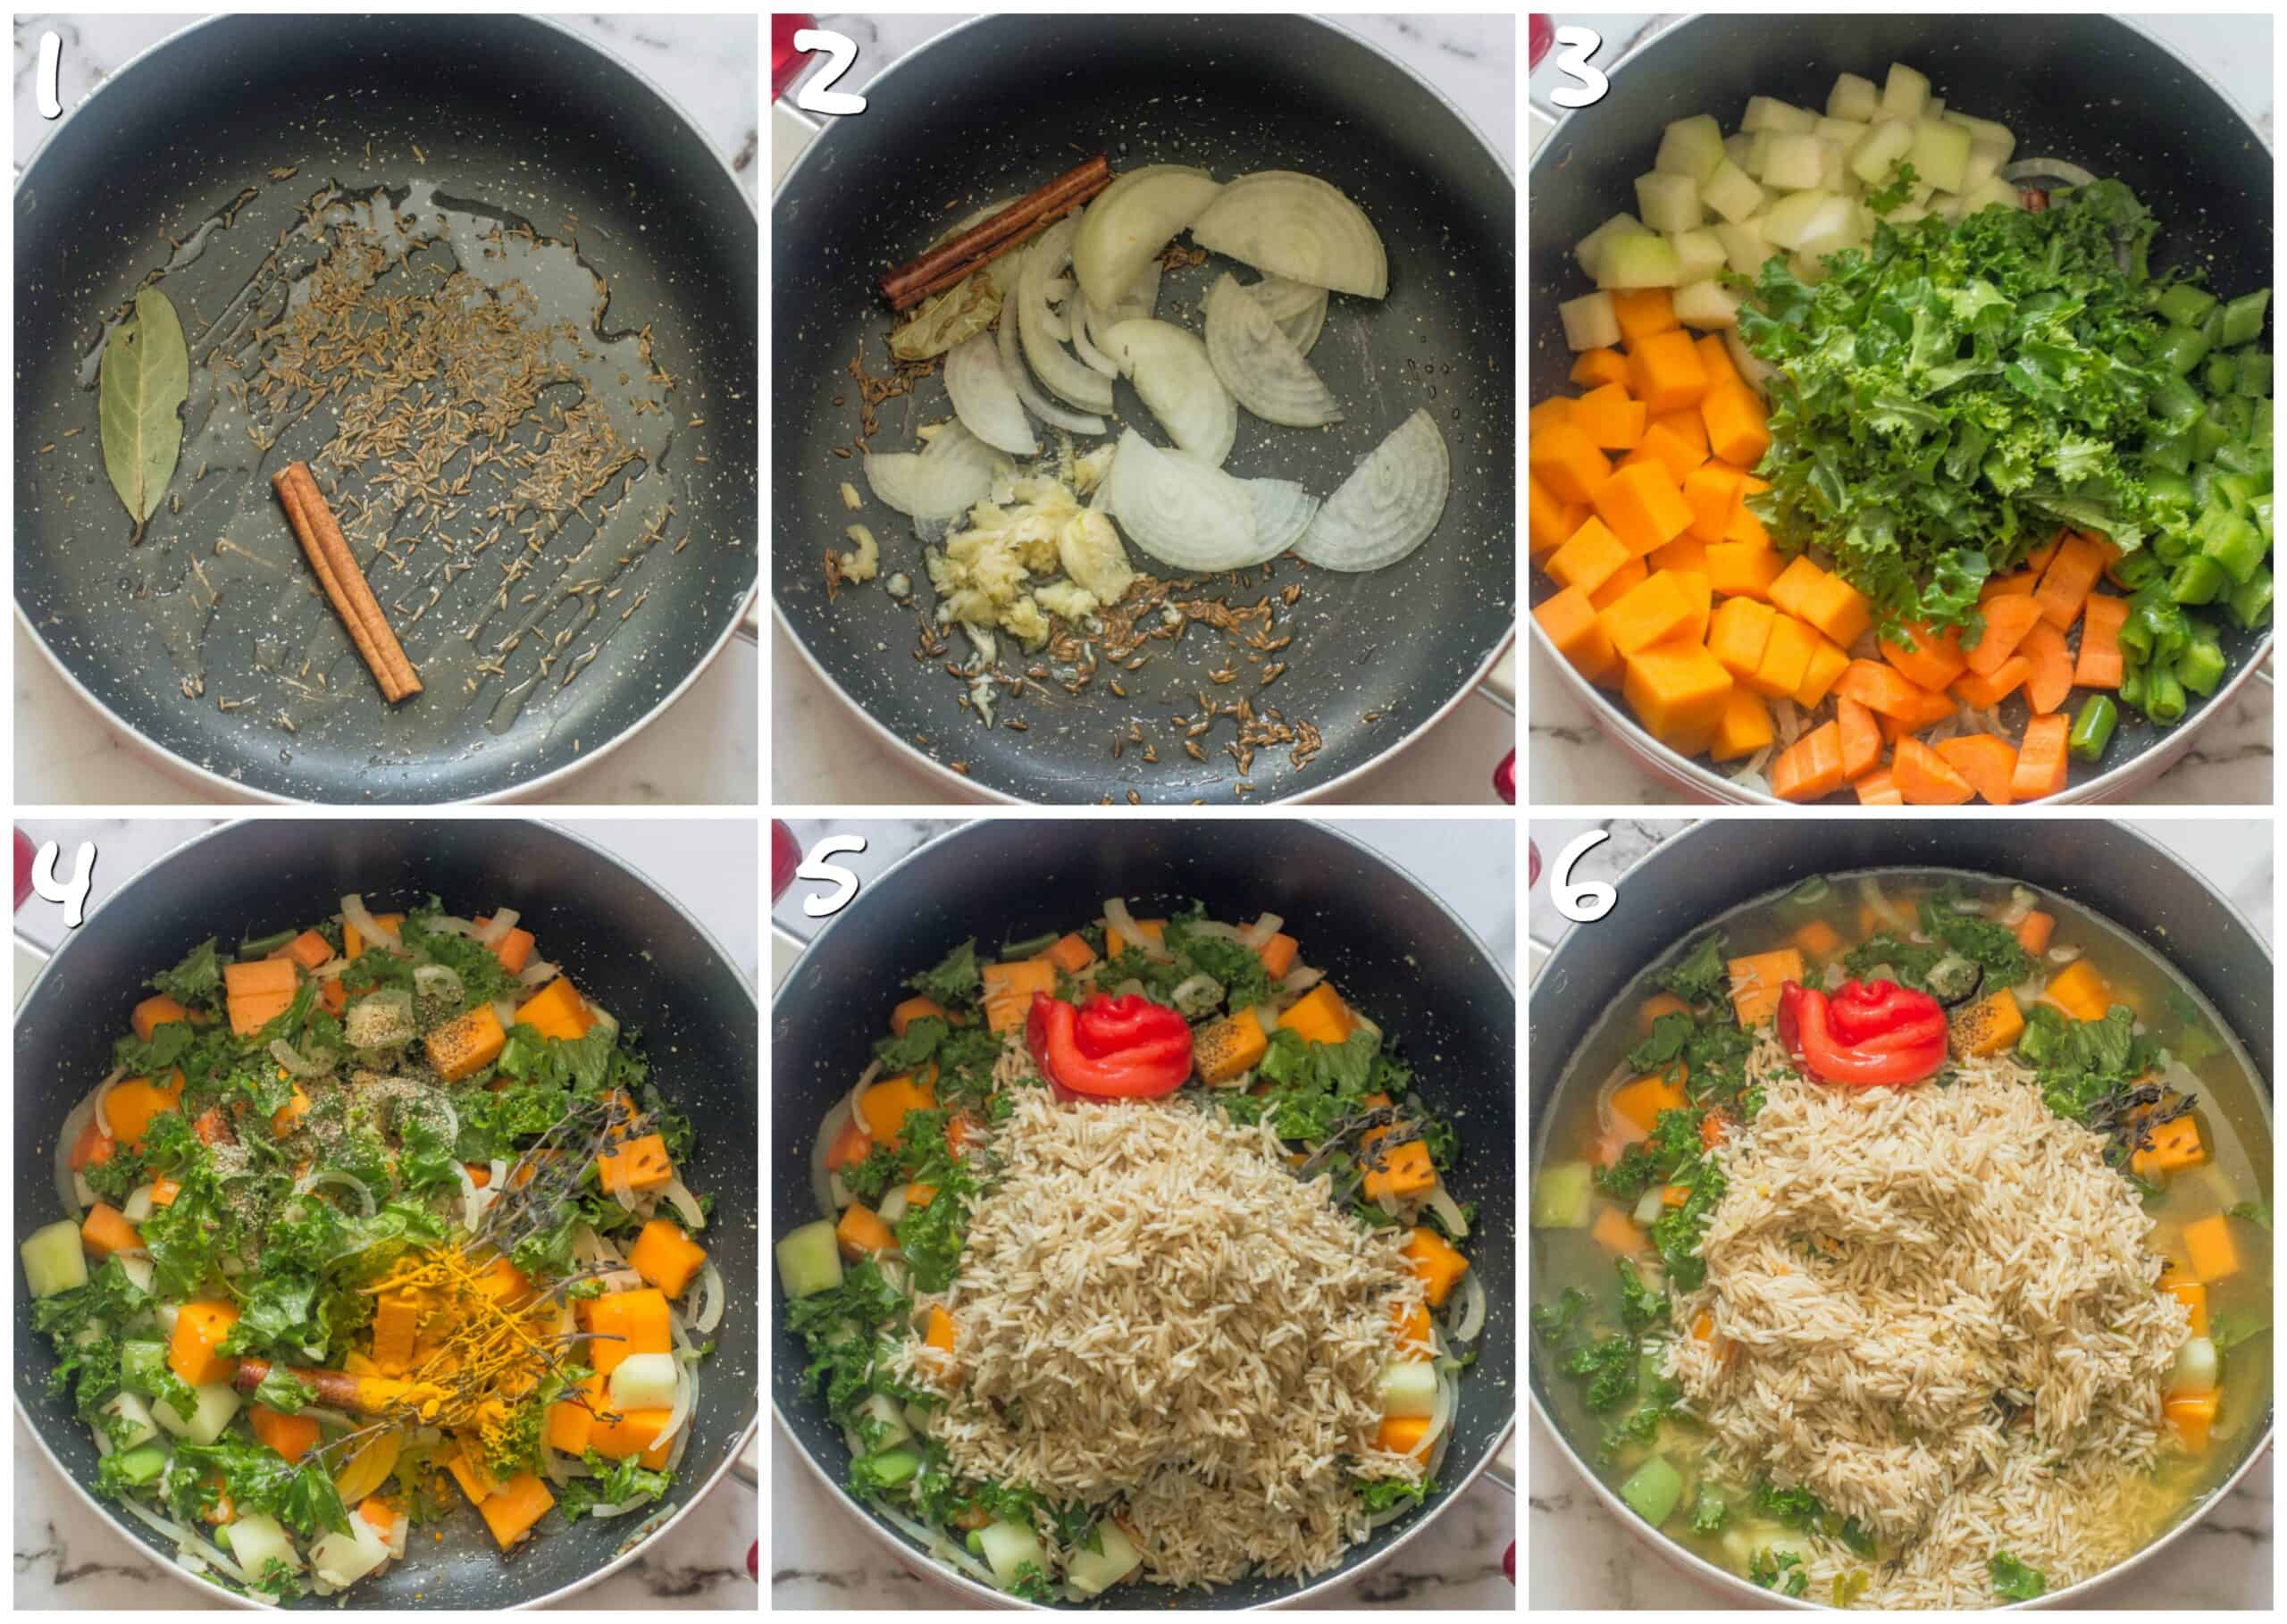 steps 1-6 cooking vegetables, adding rice and broth to the pot